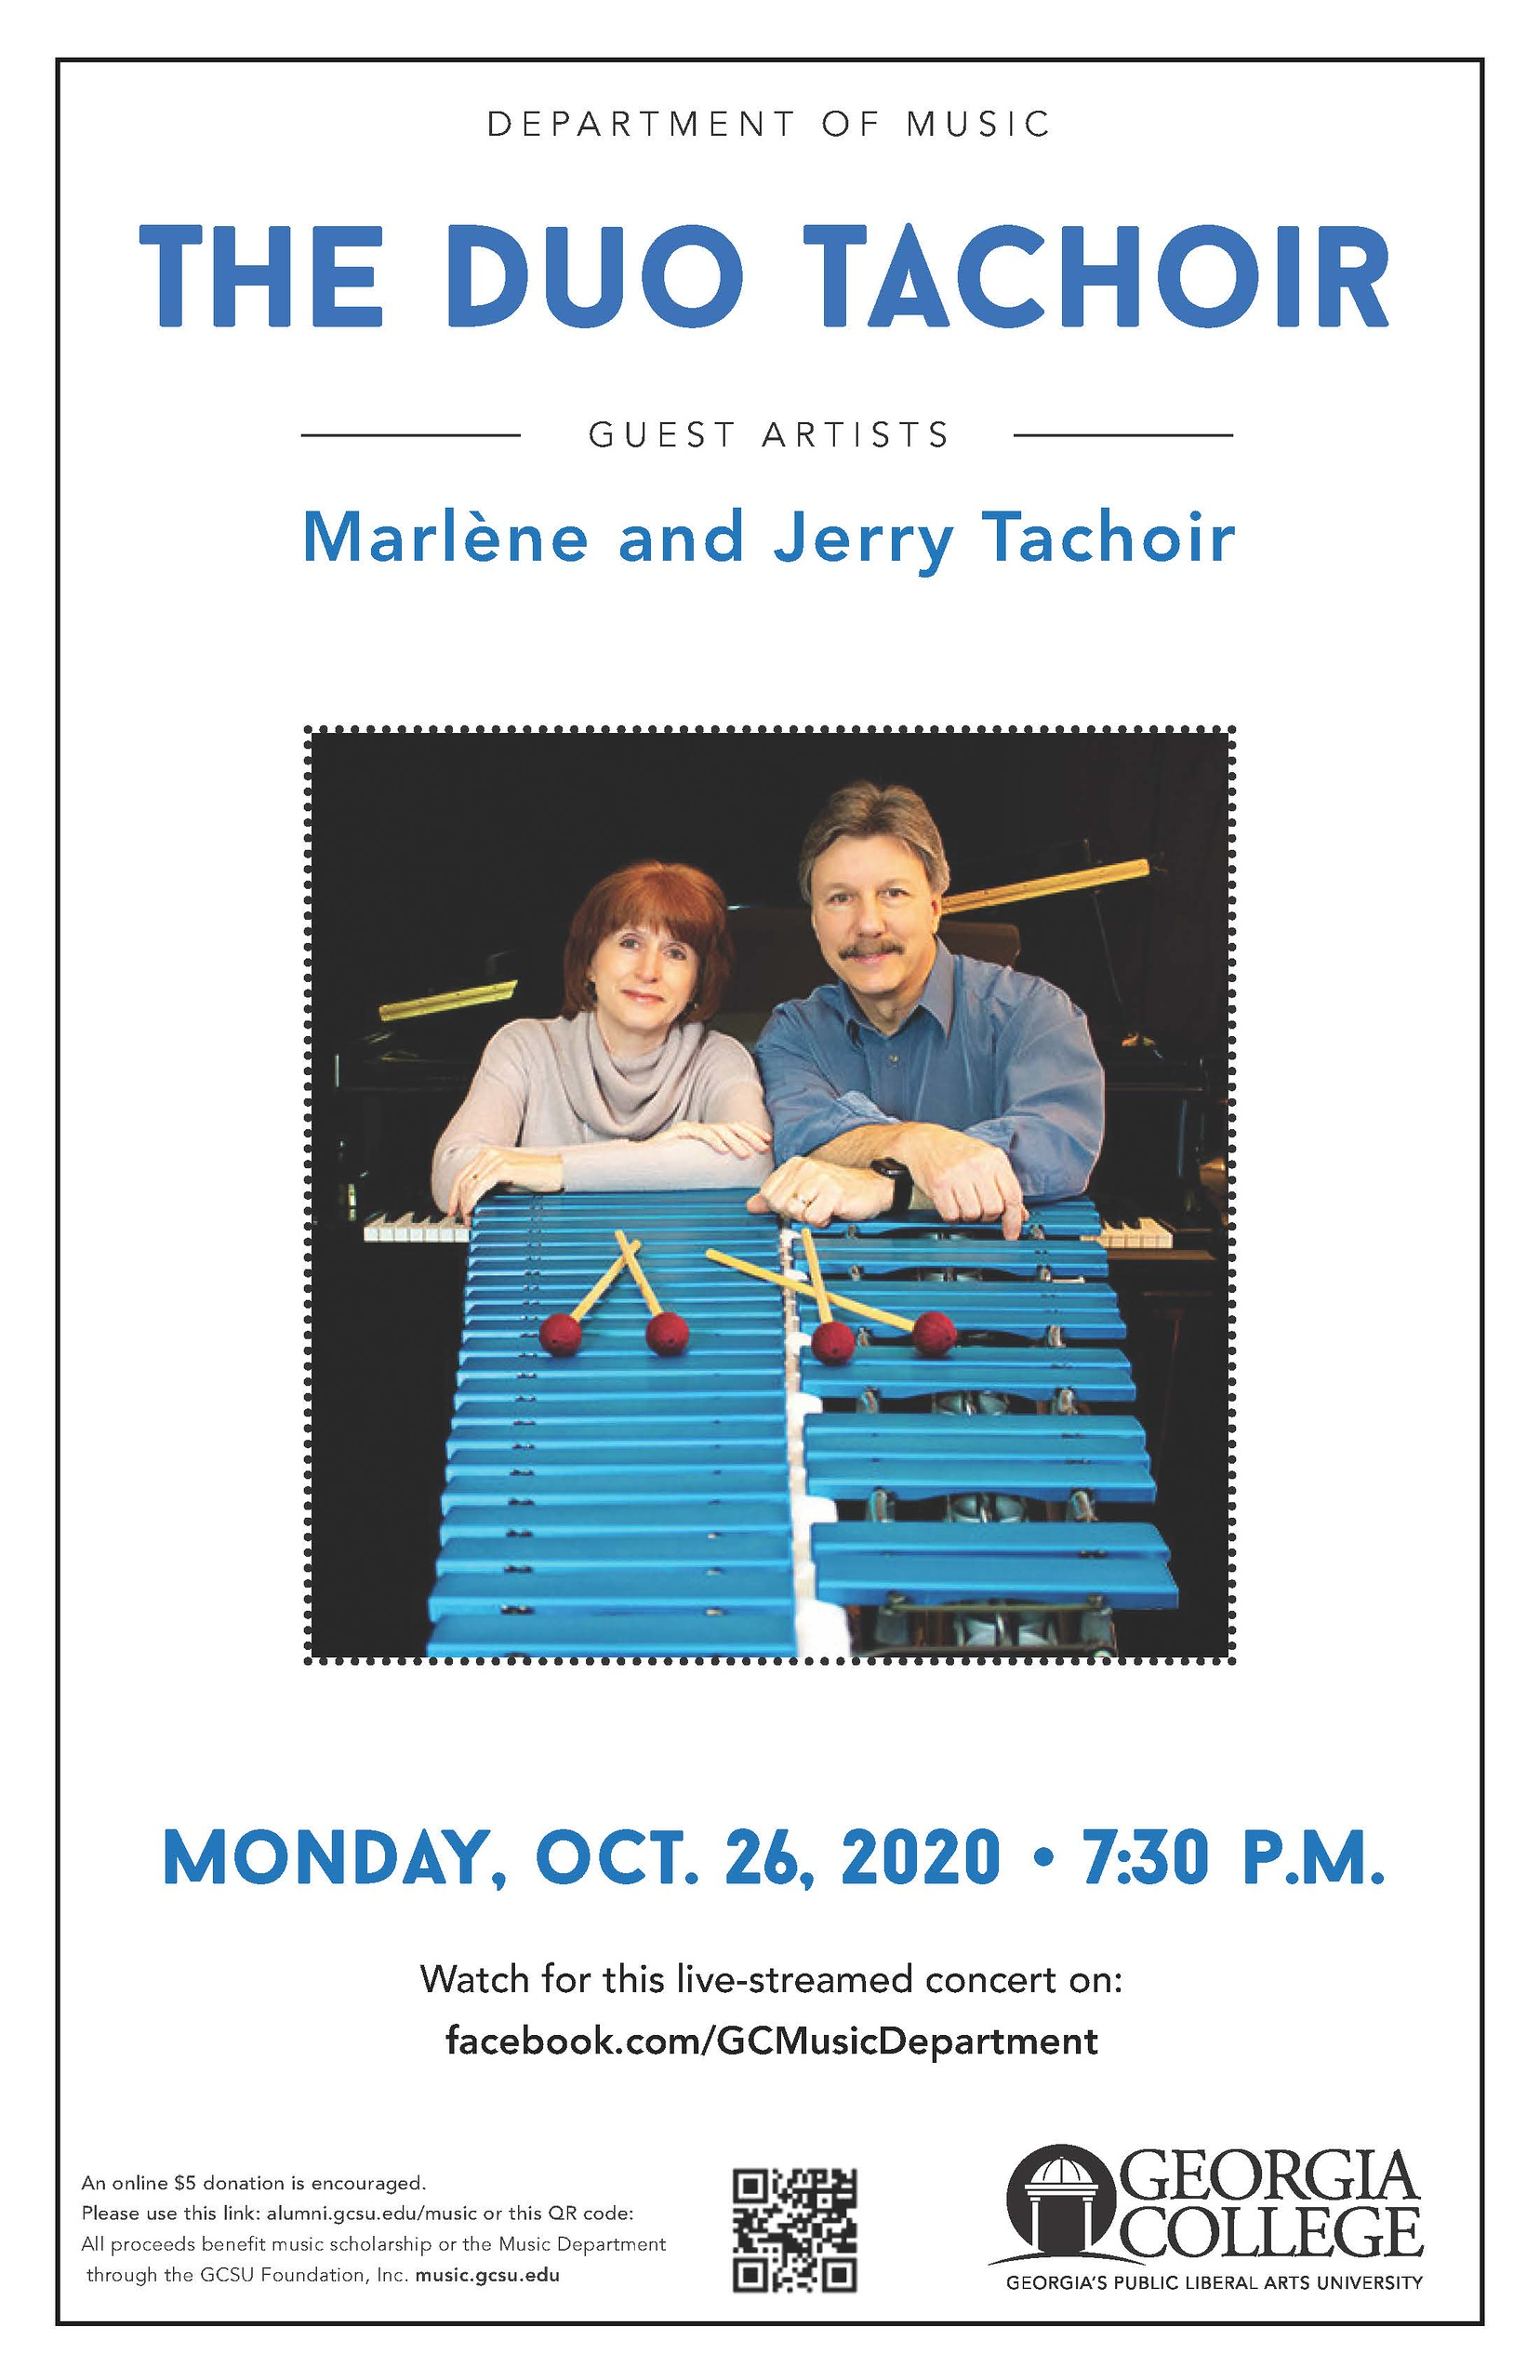 Please join us Monday evening, Oct. 26, 7:30 pm for this guest artist concert!